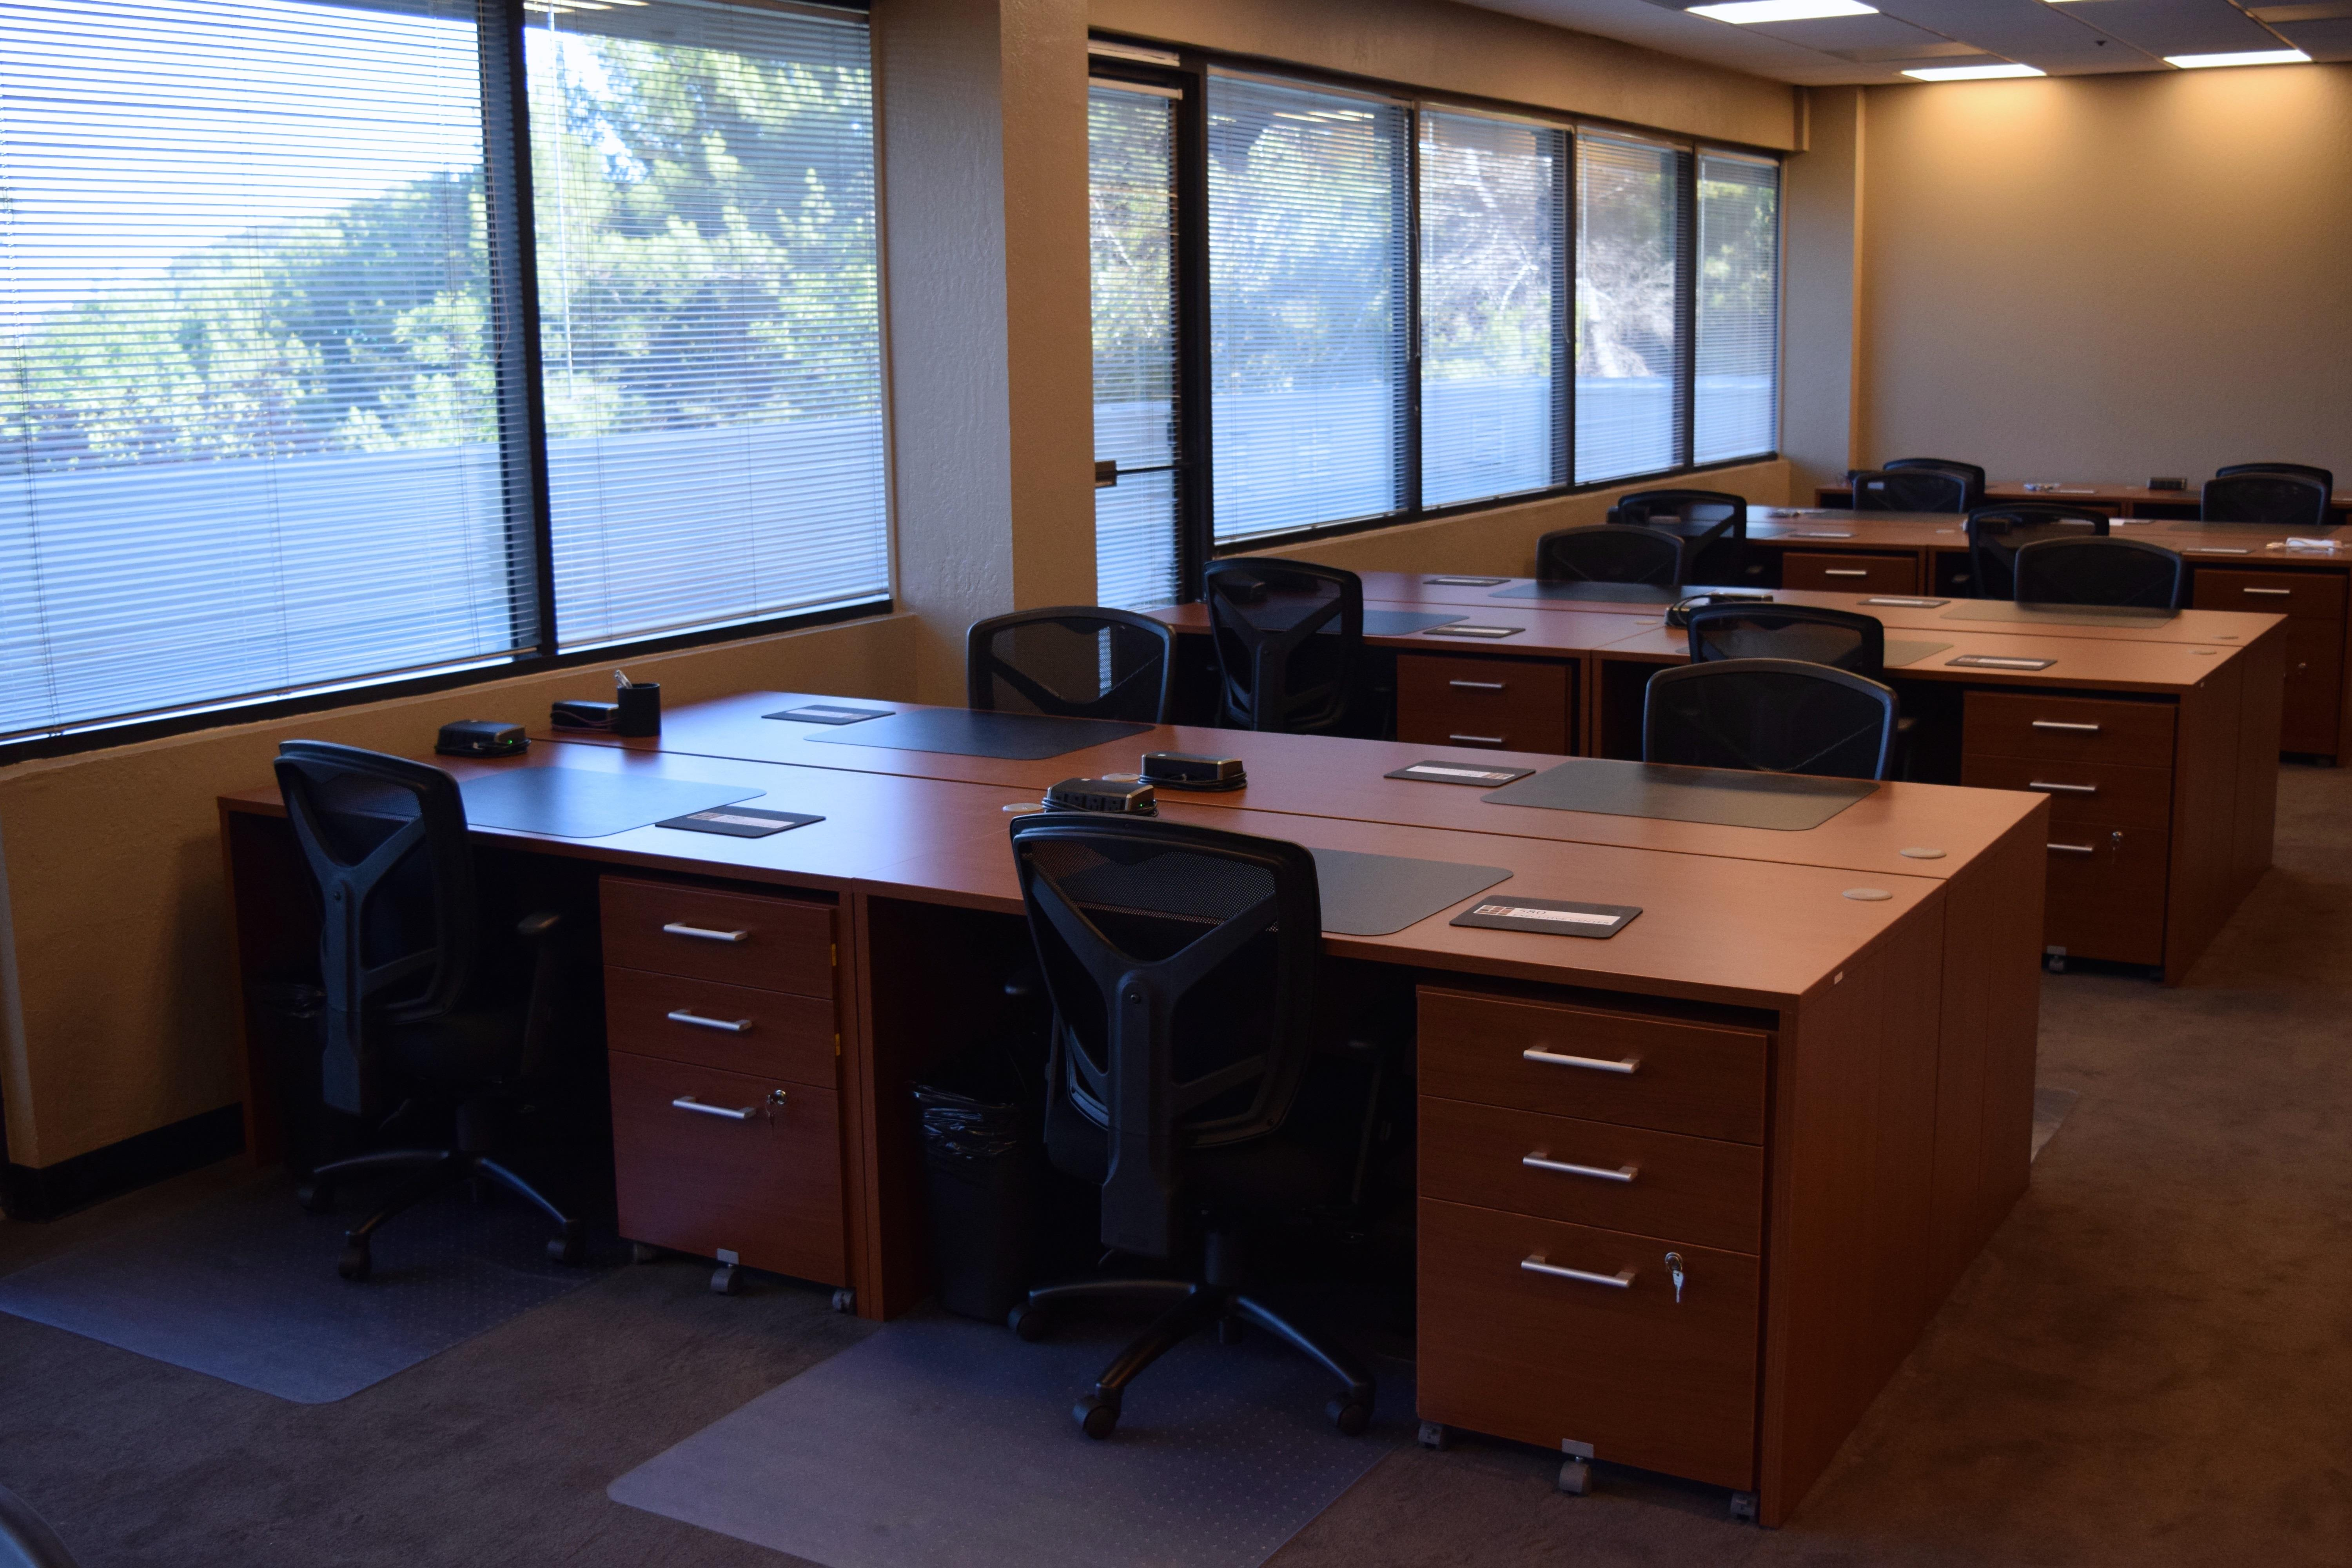 580 Executive Center - Day Pass Co-working Space